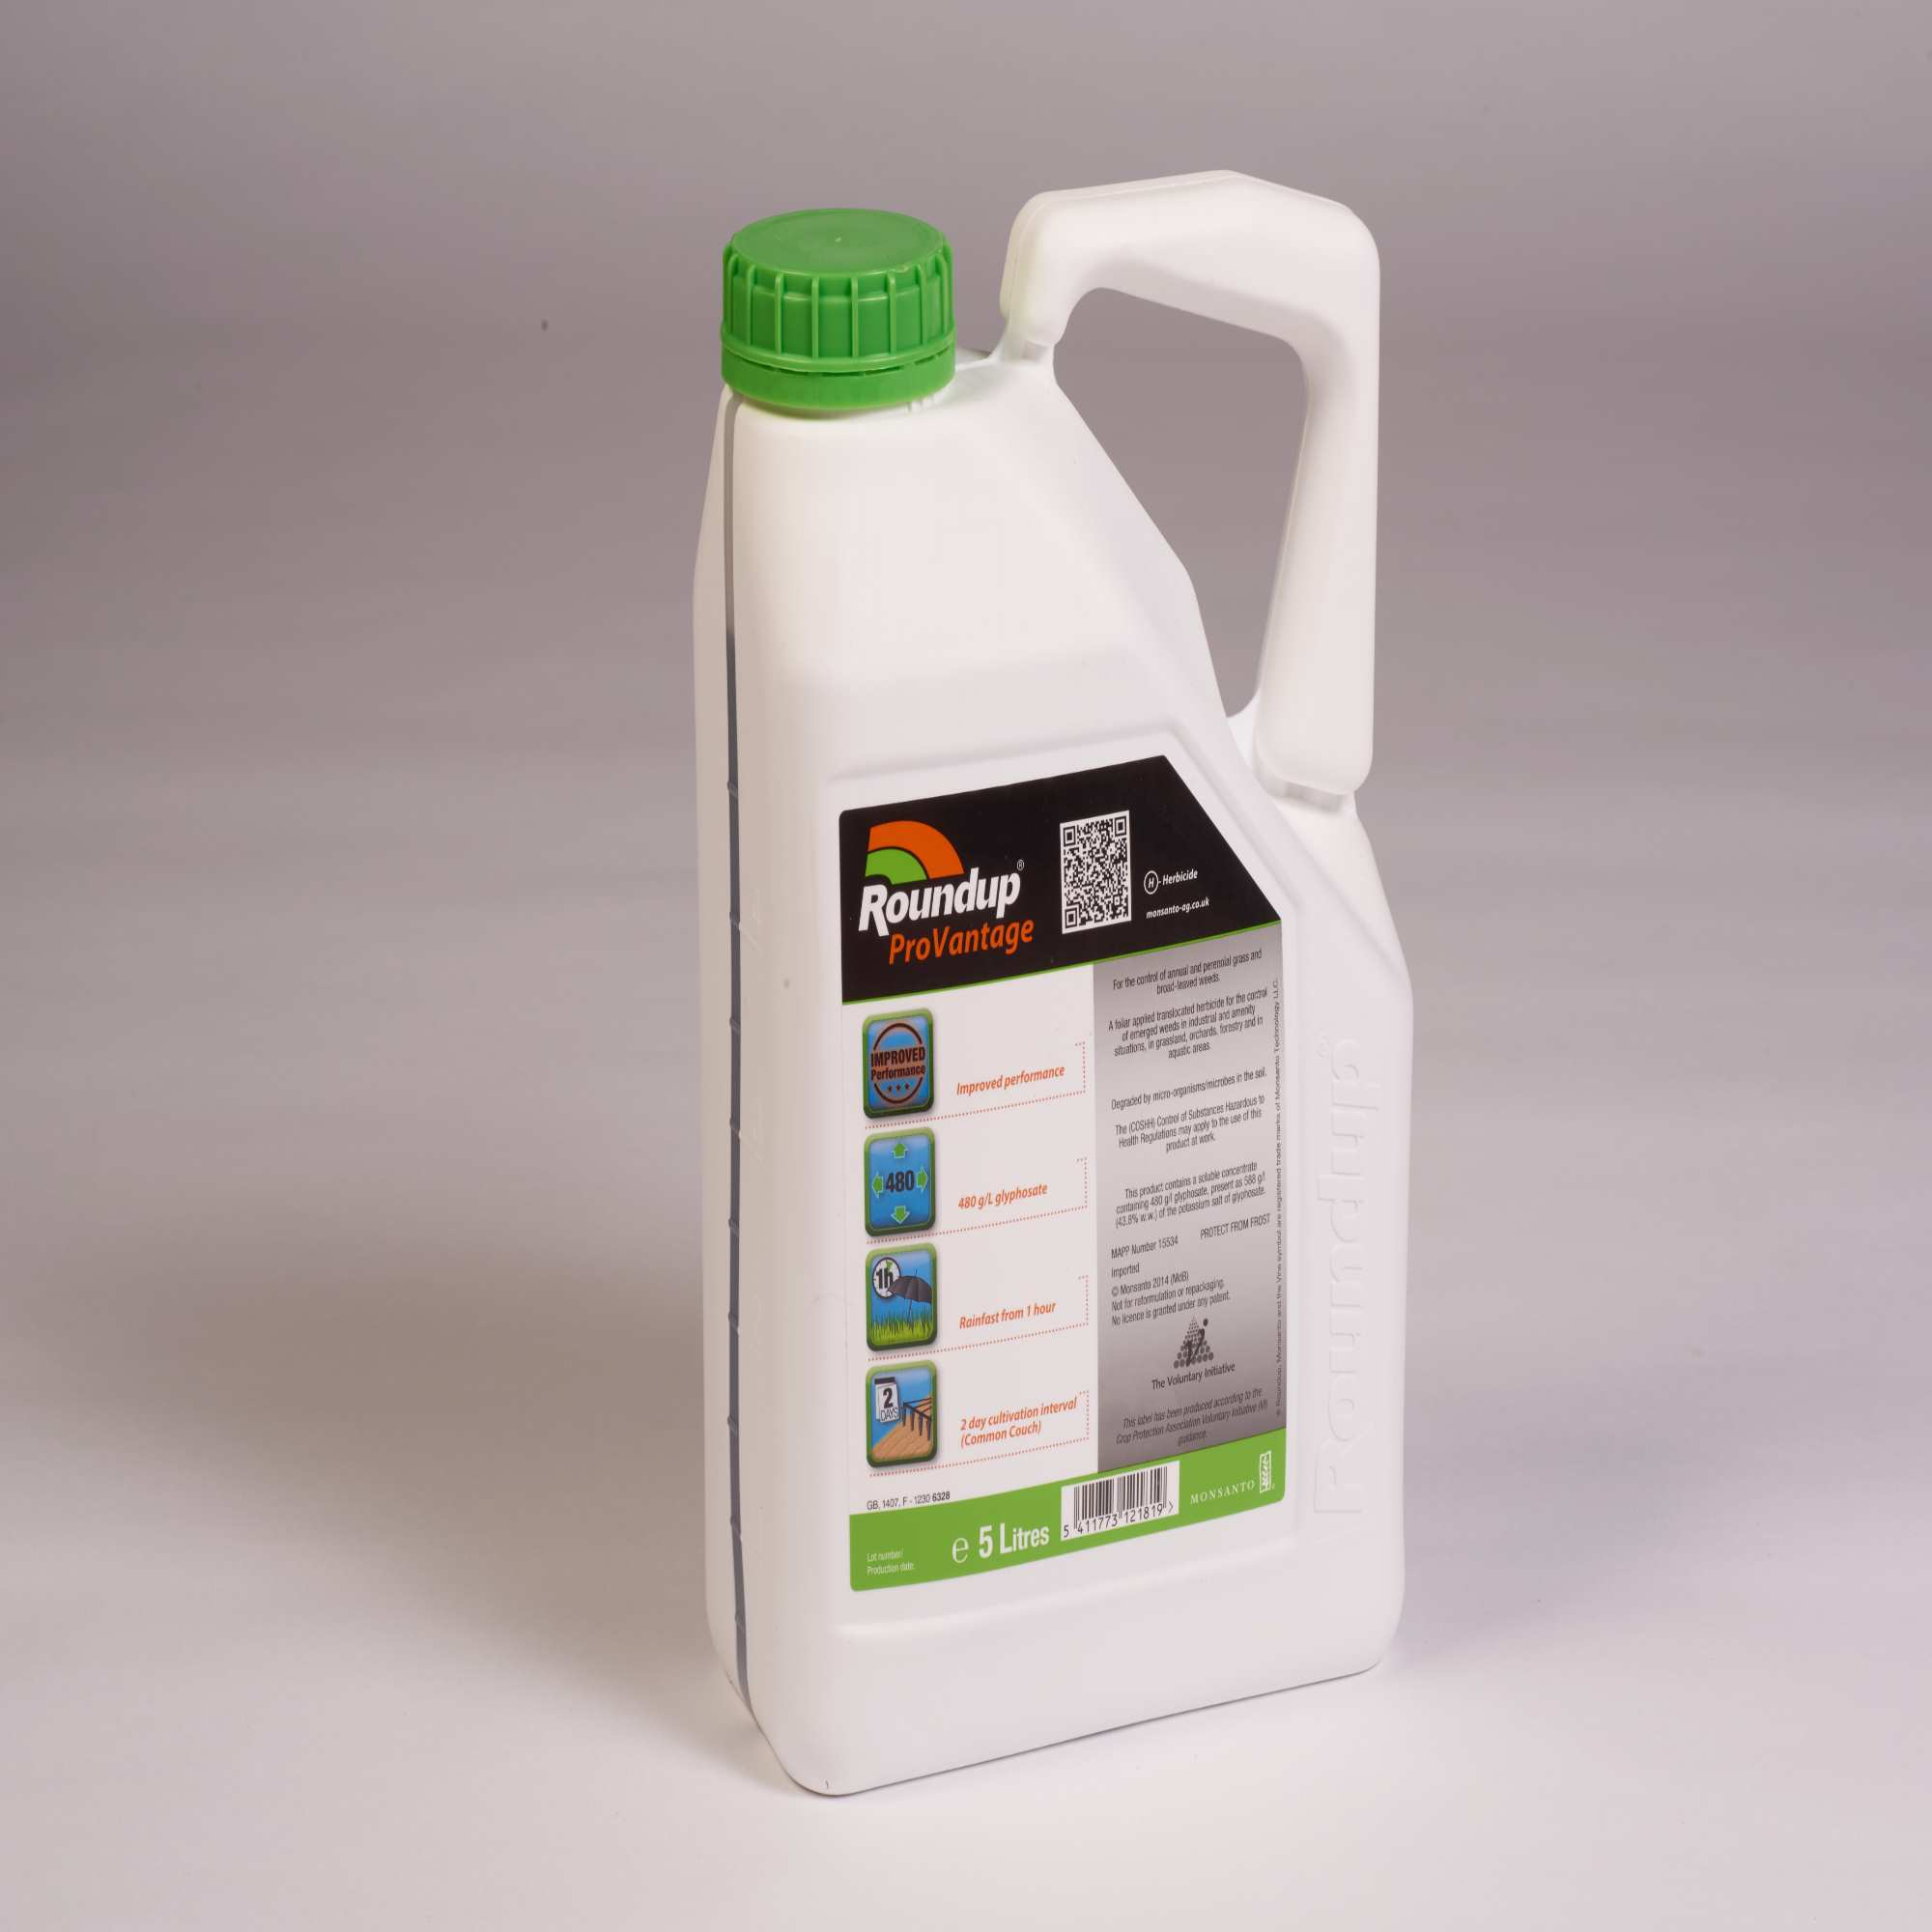 Round-up Pro Vantage 480 - Total Weed Control | Green-tech